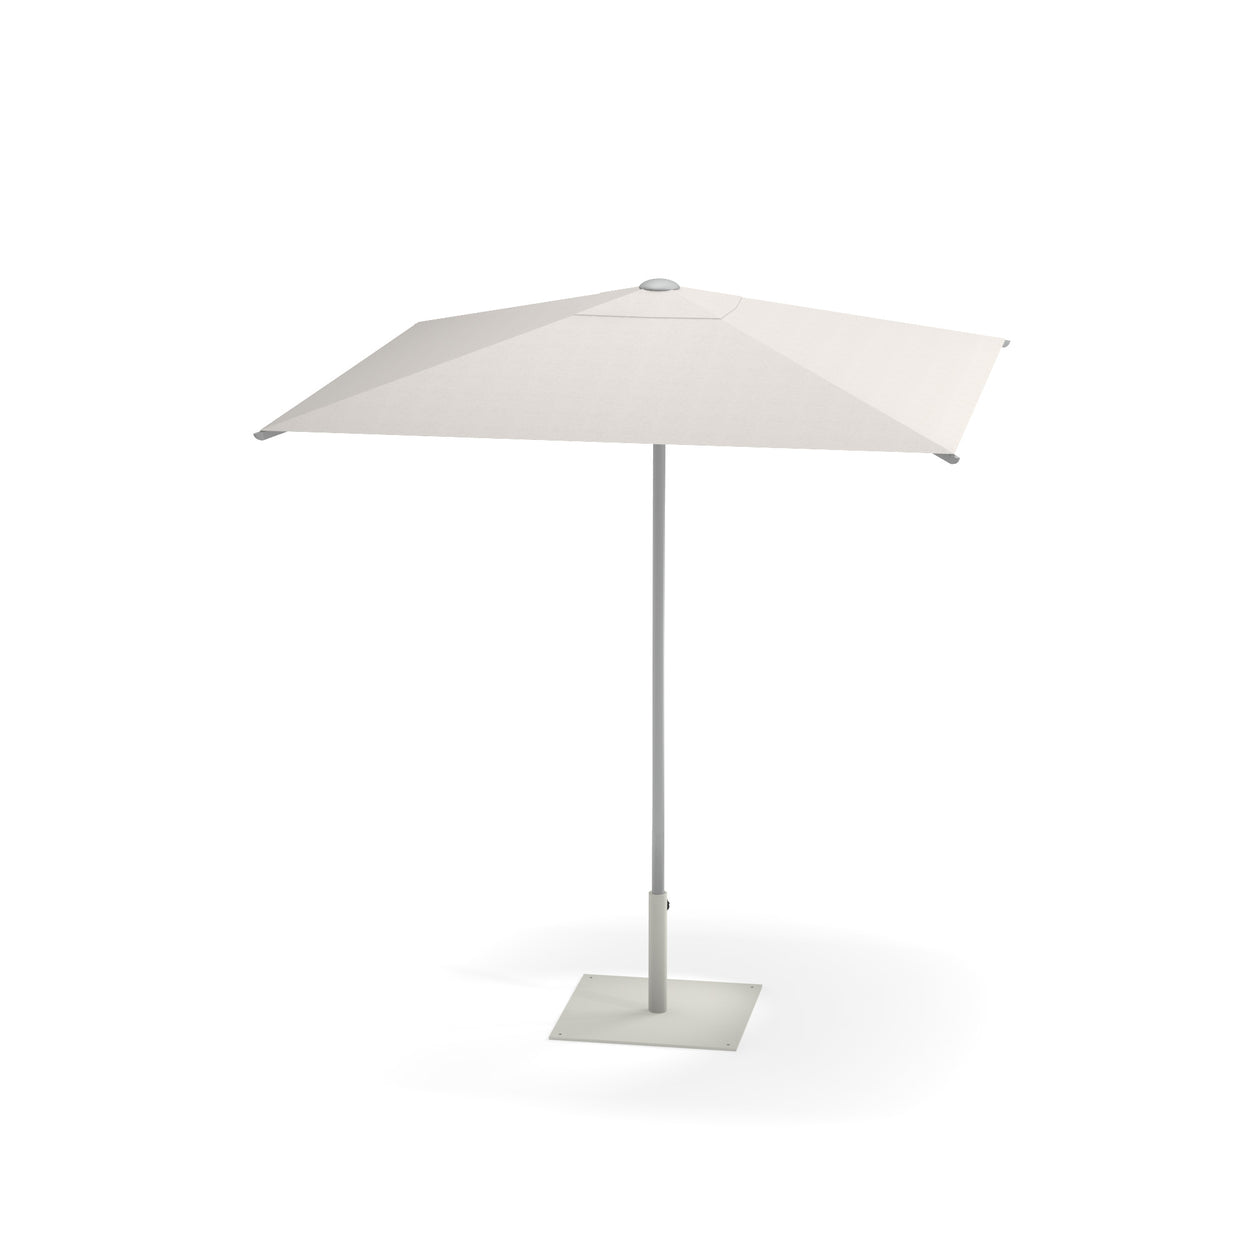 EMU Shade Square Parasol 2x2m and 3x3m